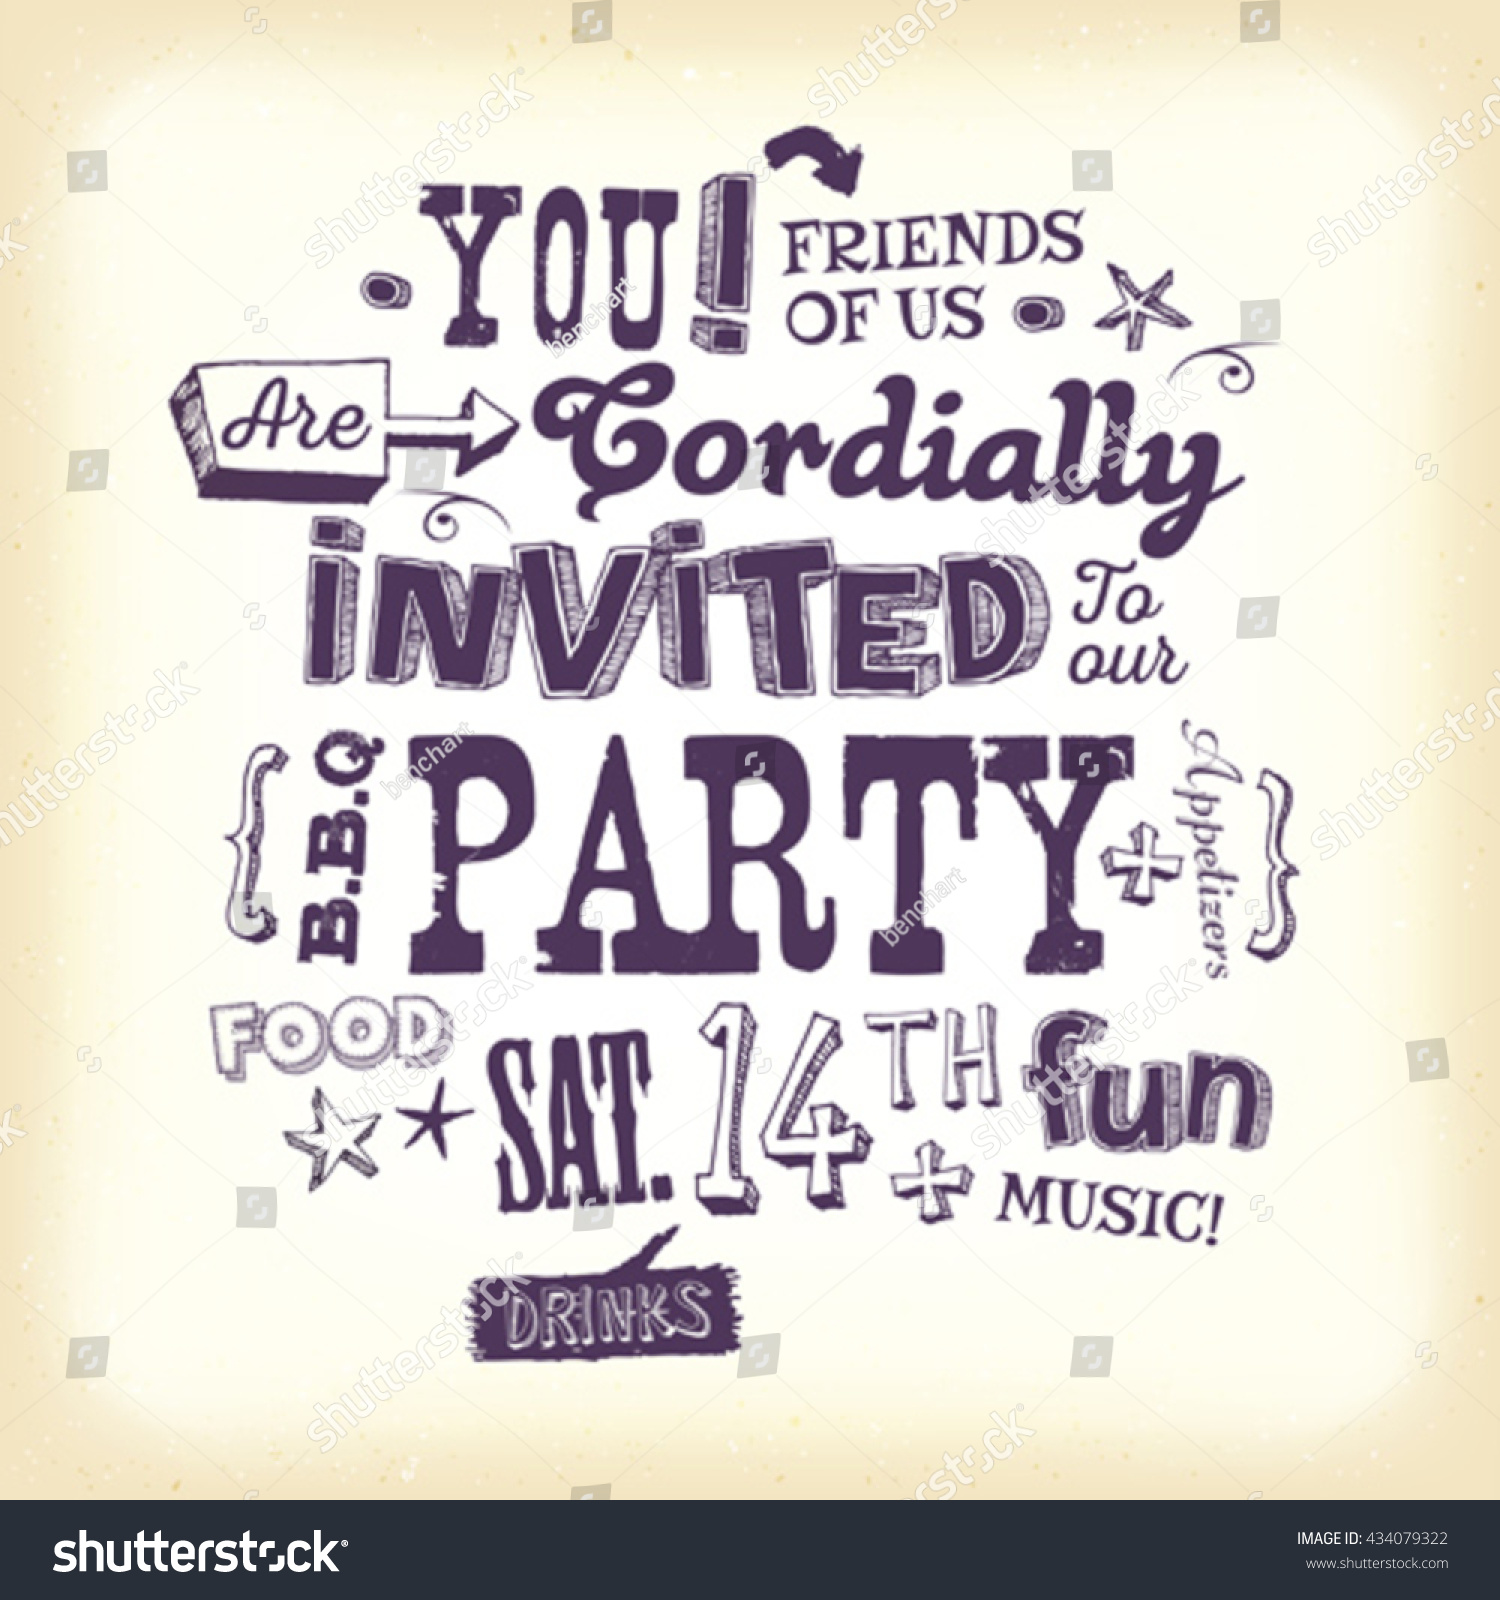 Vintage Party Invitations Images - Party Invitations Ideas